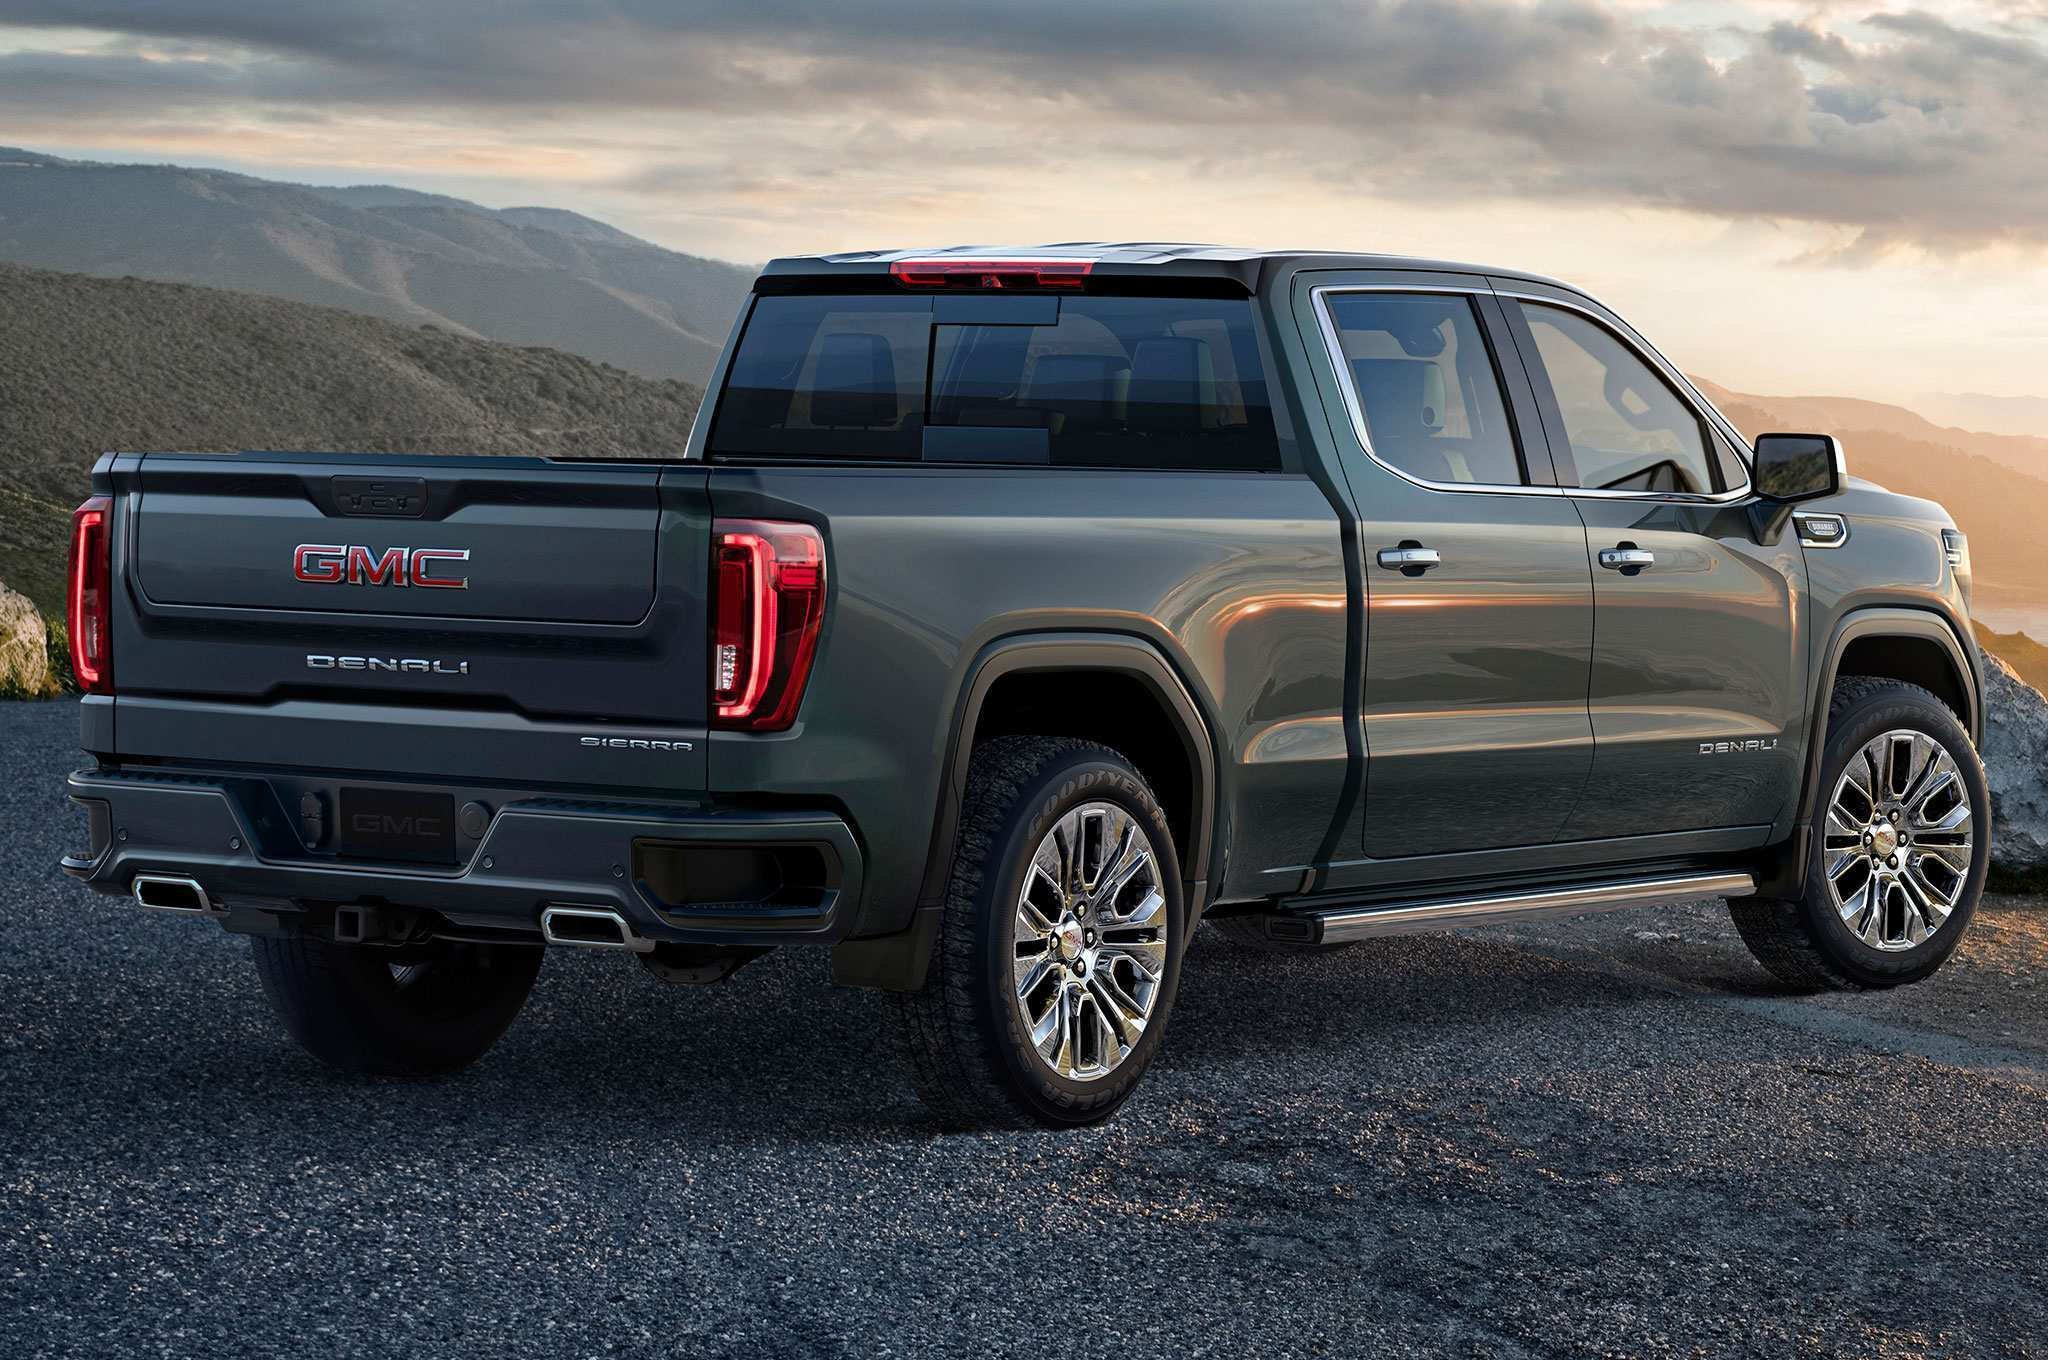 45 New 2019 Gmc 2500 Tailgate Model with 2019 Gmc 2500 Tailgate